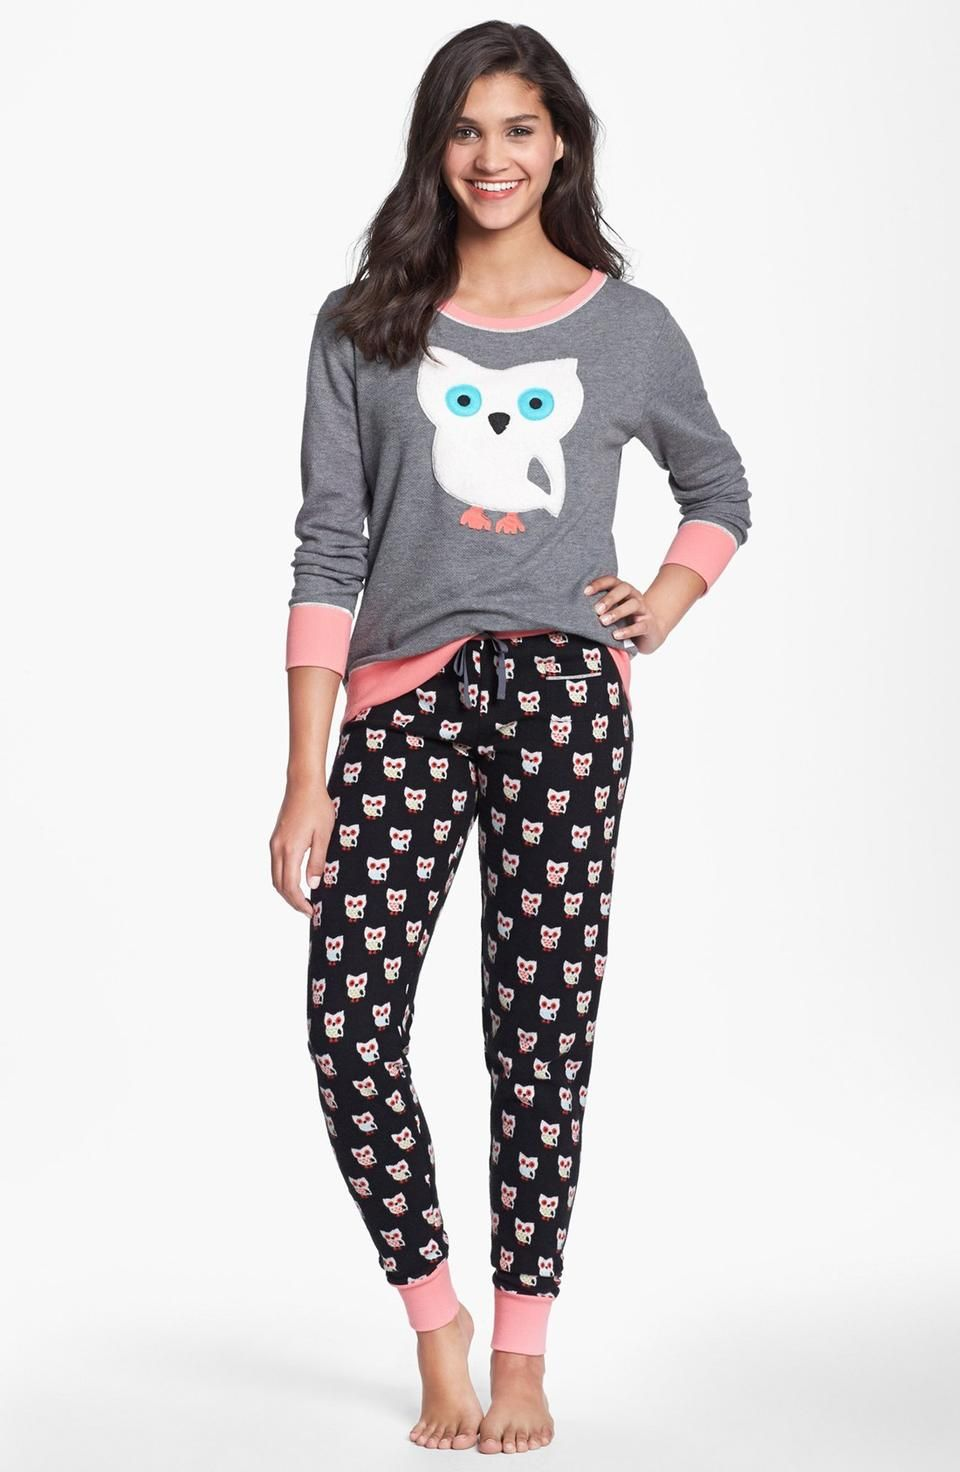 Adult Footed Christmas Pajamas